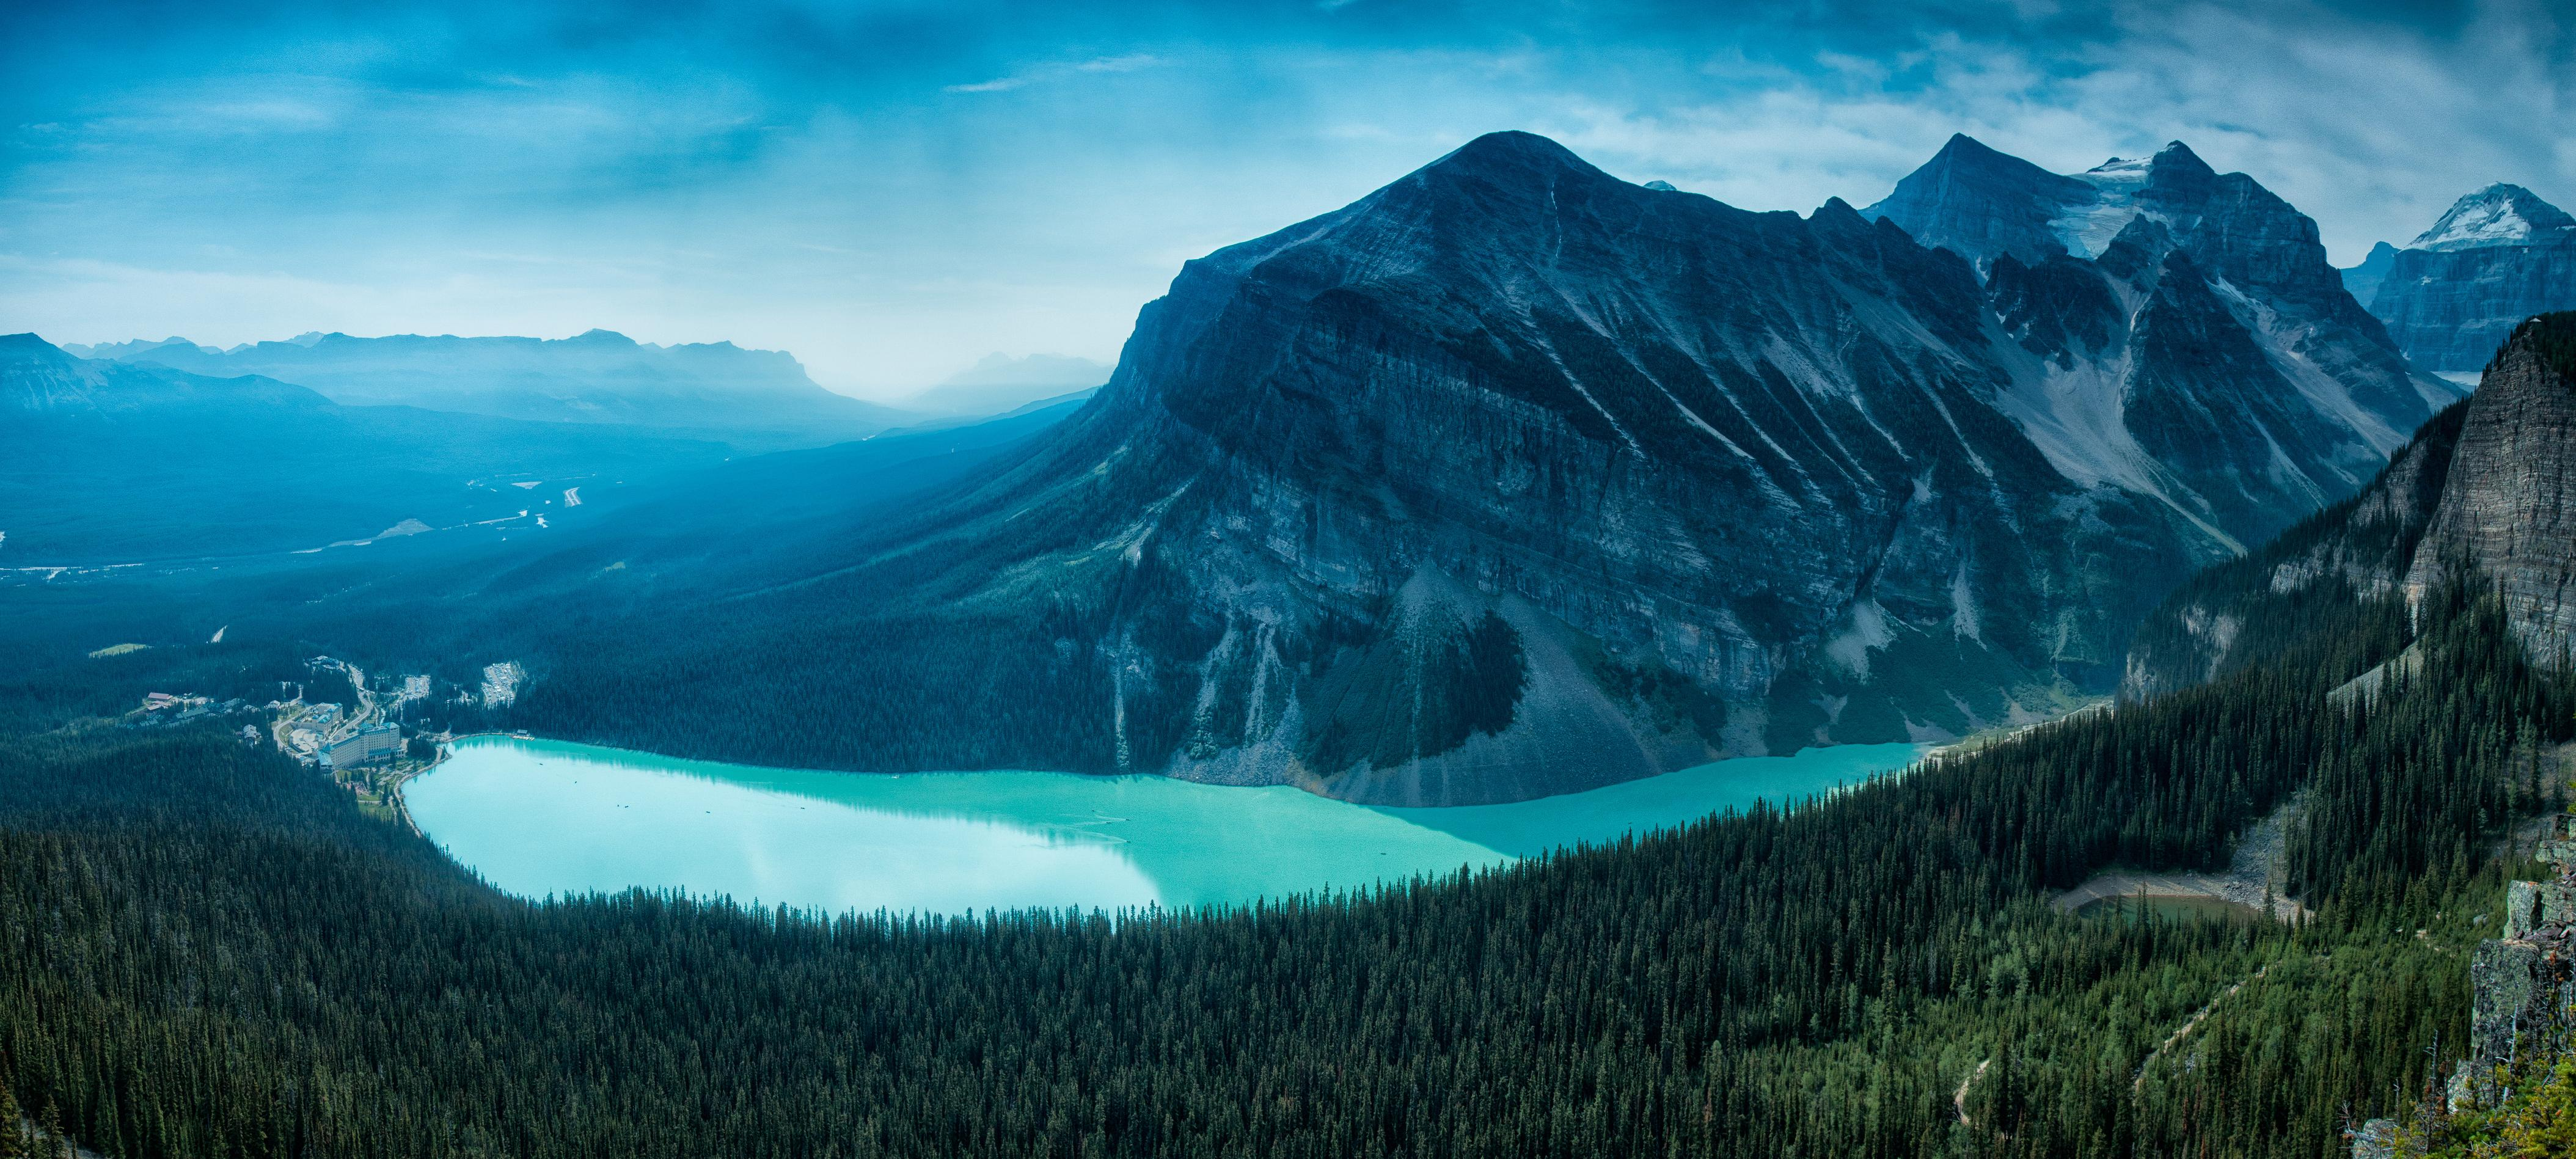 Wallpapers Canadian Rockies, Lake Louise, Banff National Park, Canada